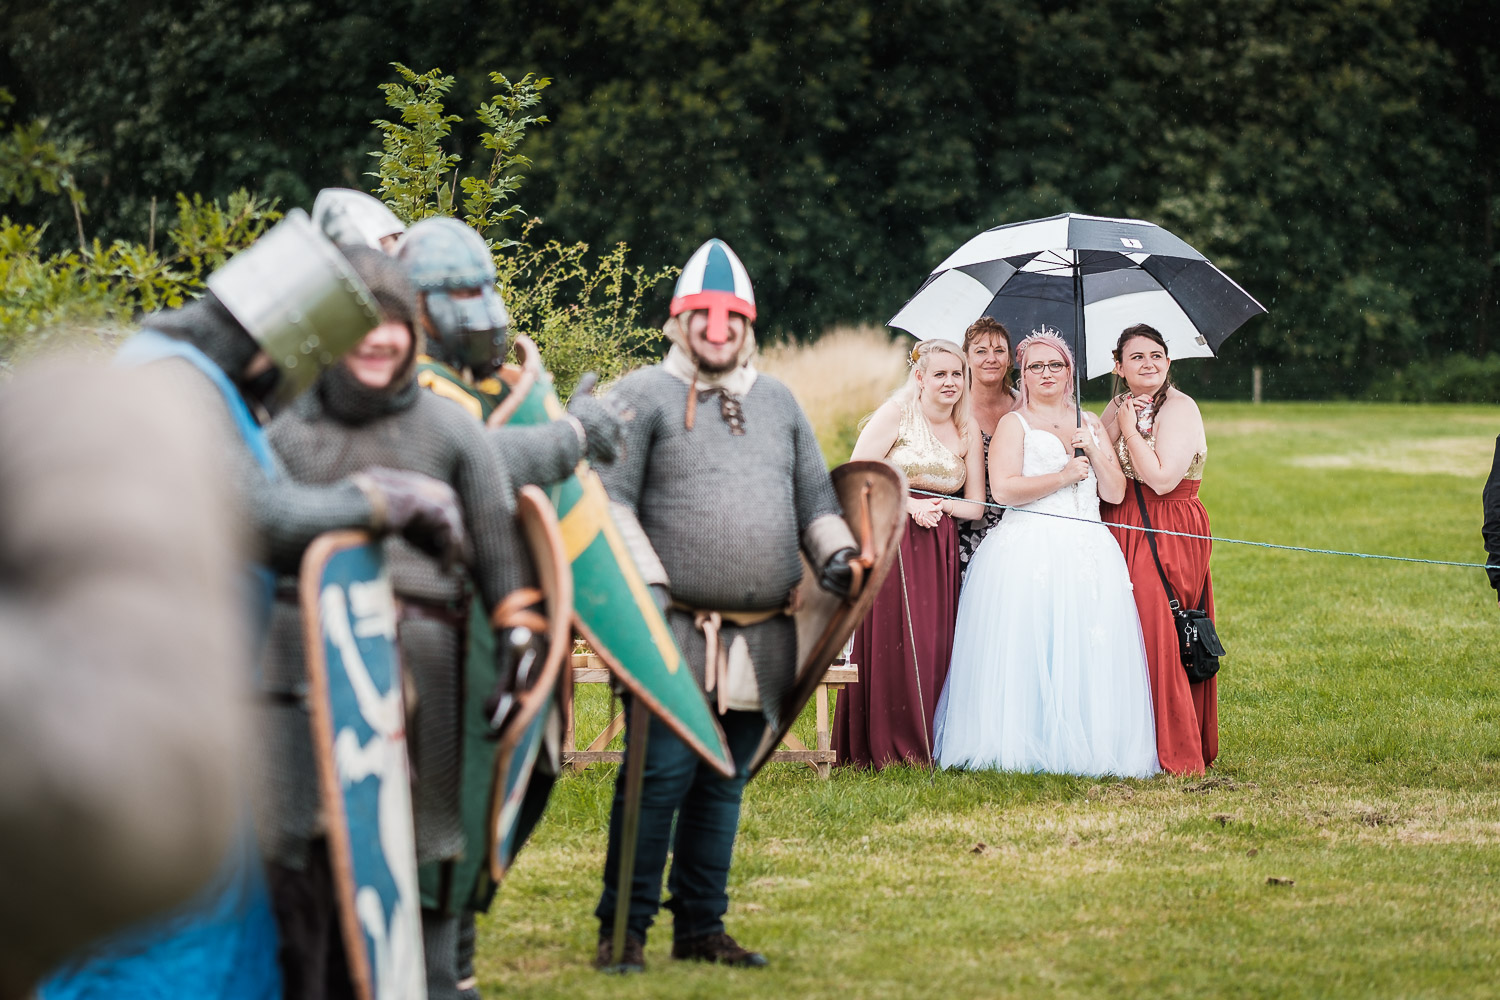 the bride and her bridesmaids watch the knights tournament